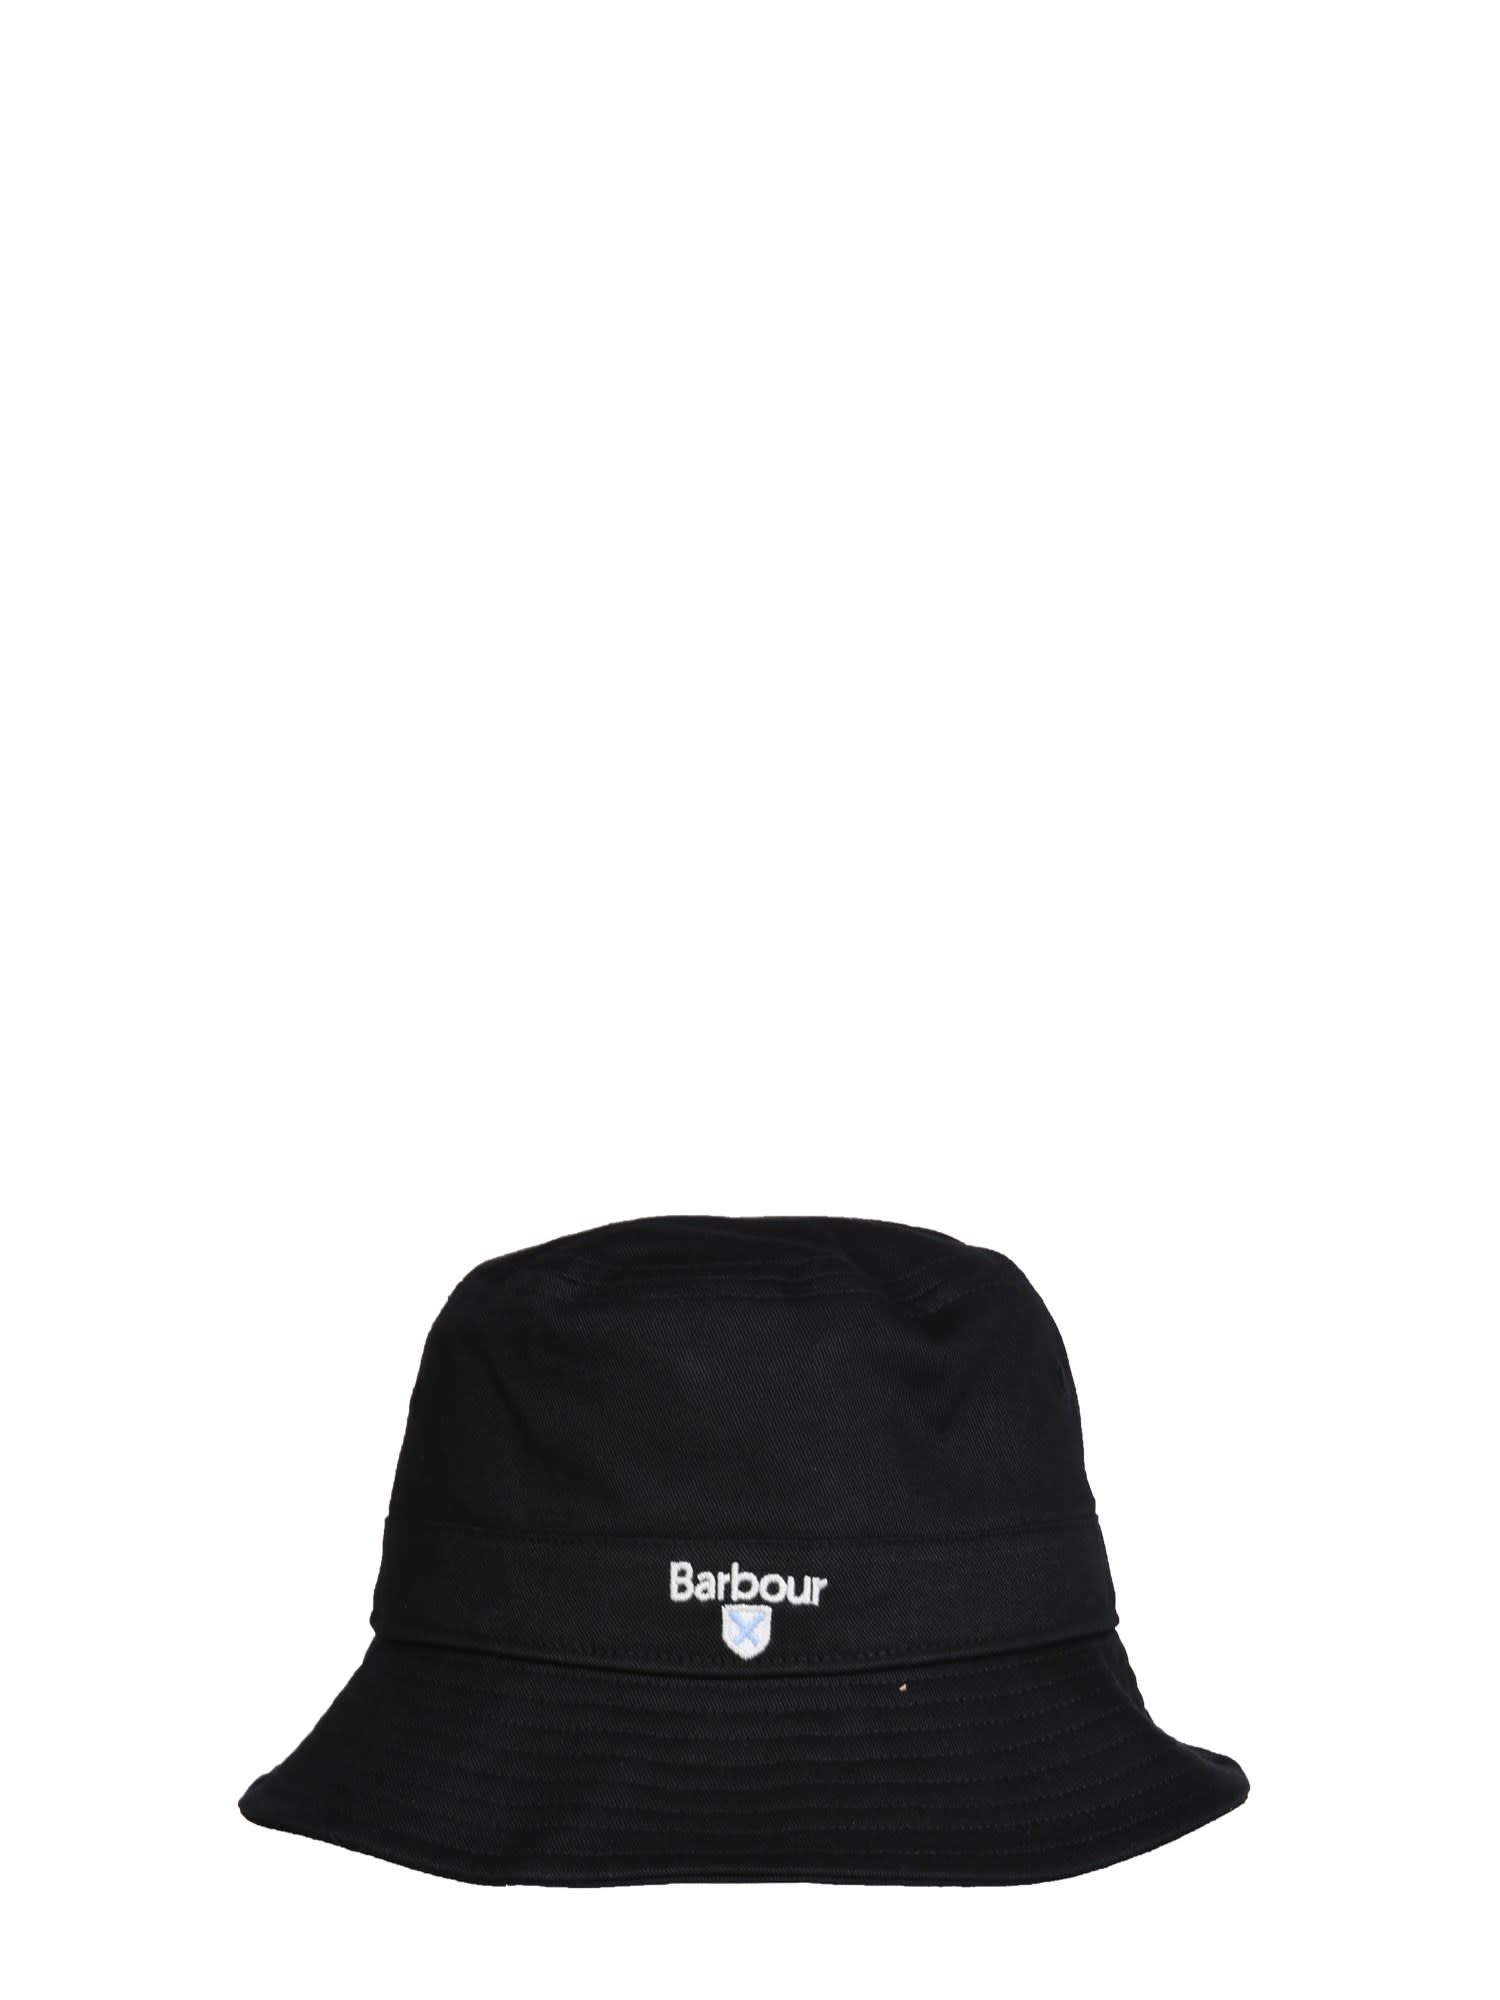 Barbour BUCKET HAT